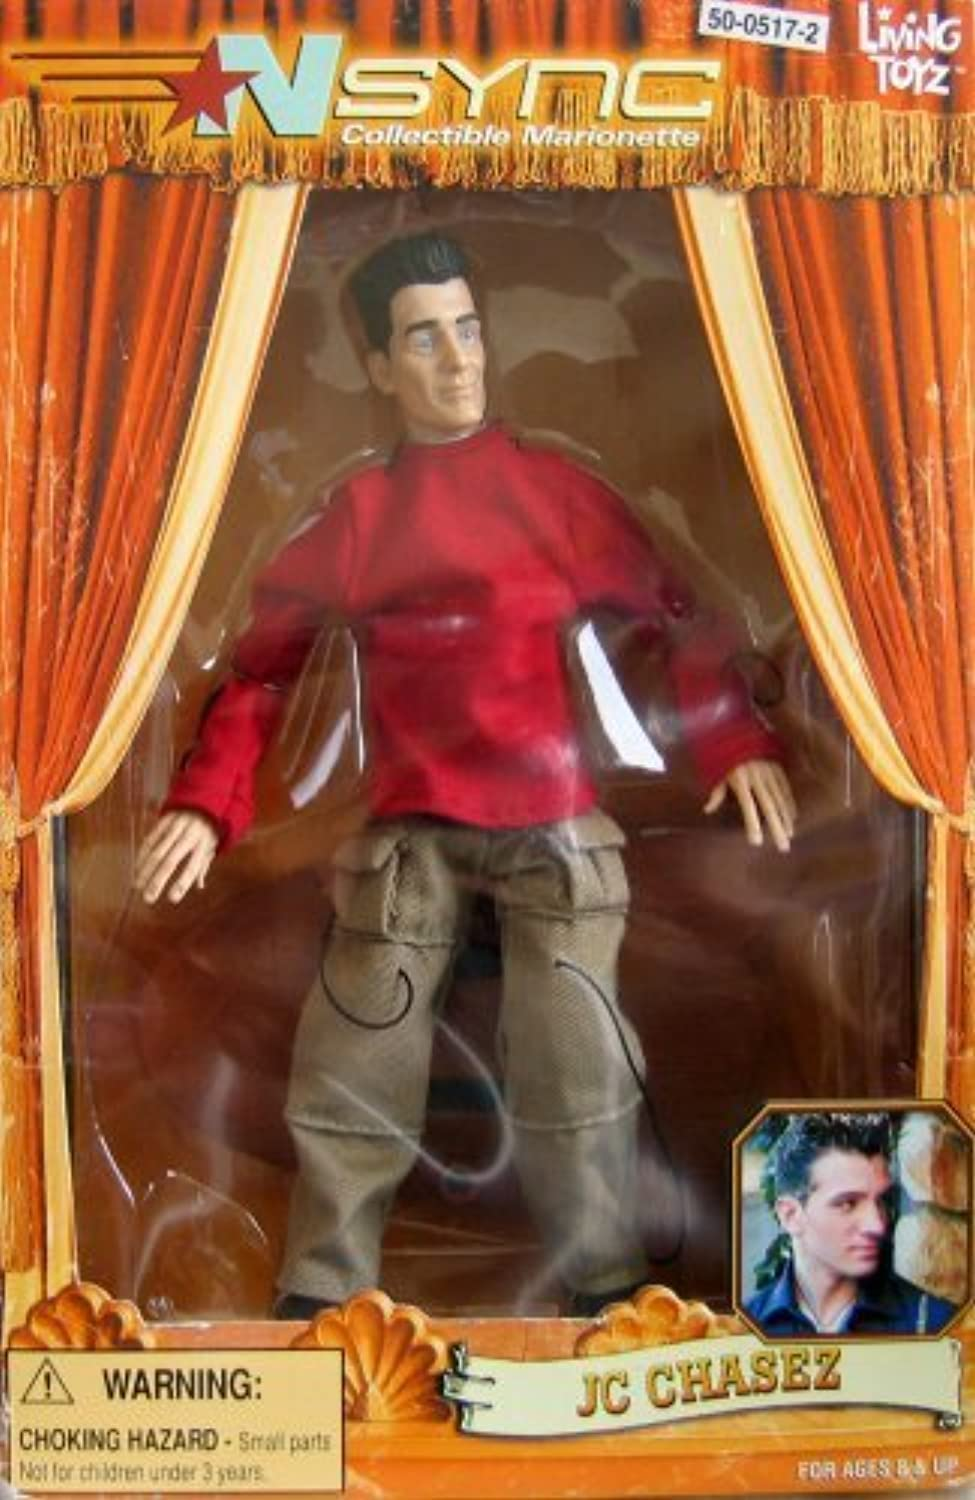 NSync Collectible Marionette  JC Chasez by Living Toyz